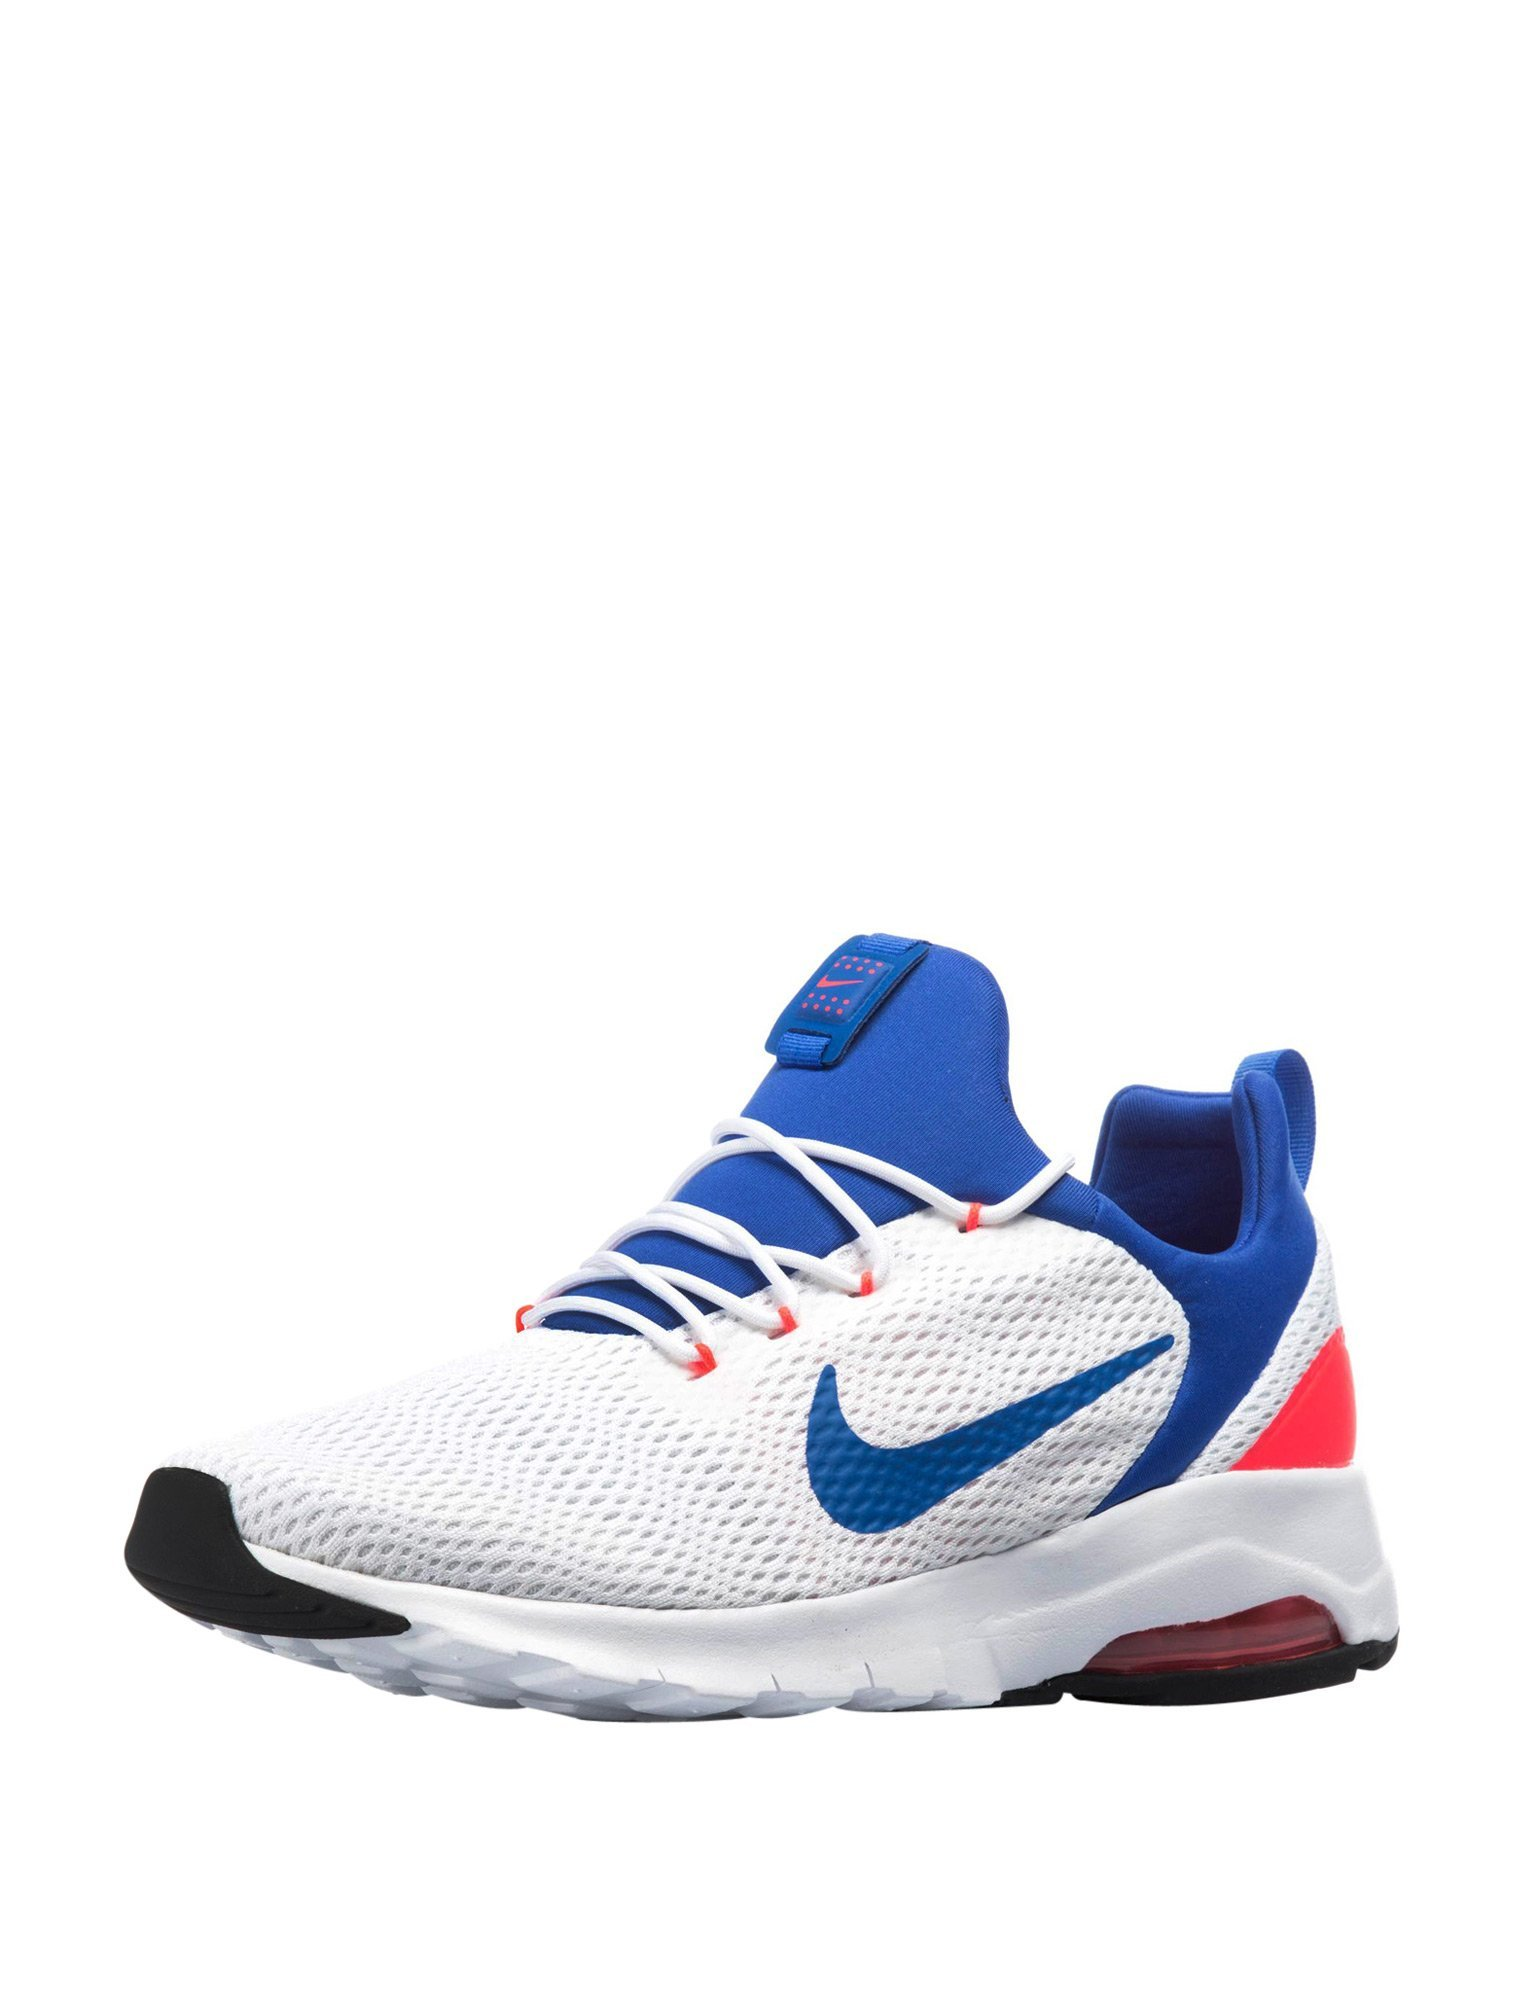 the best attitude c3eb1 73bff NIKE Men s Air Max Motion Racer White-Blue Sneakers